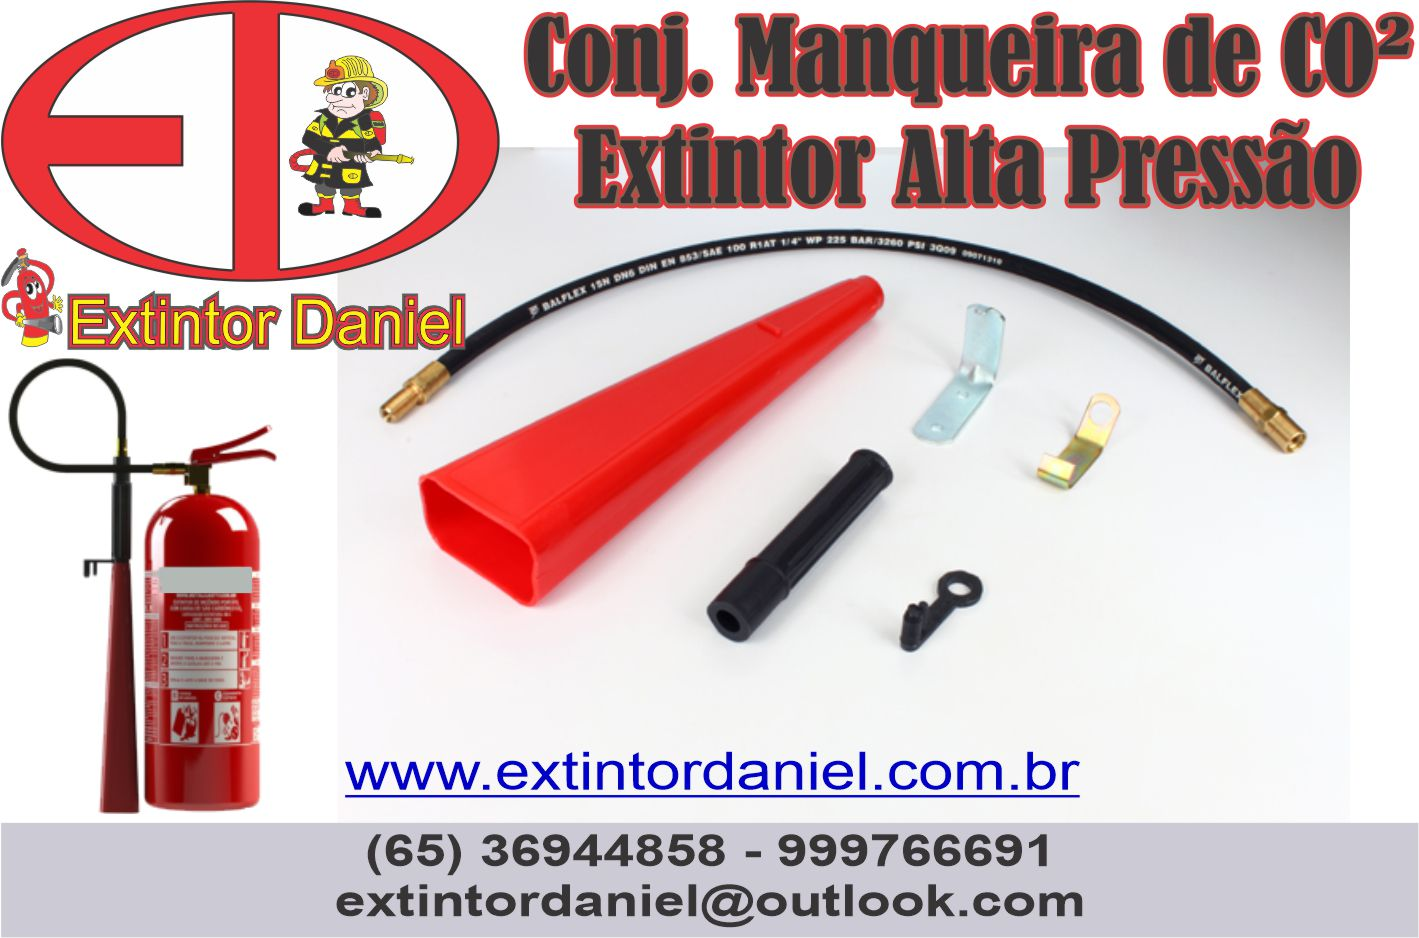 https://0201.nccdn.net/4_2/000/000/076/de9/conj-mangueira-co2.jpg